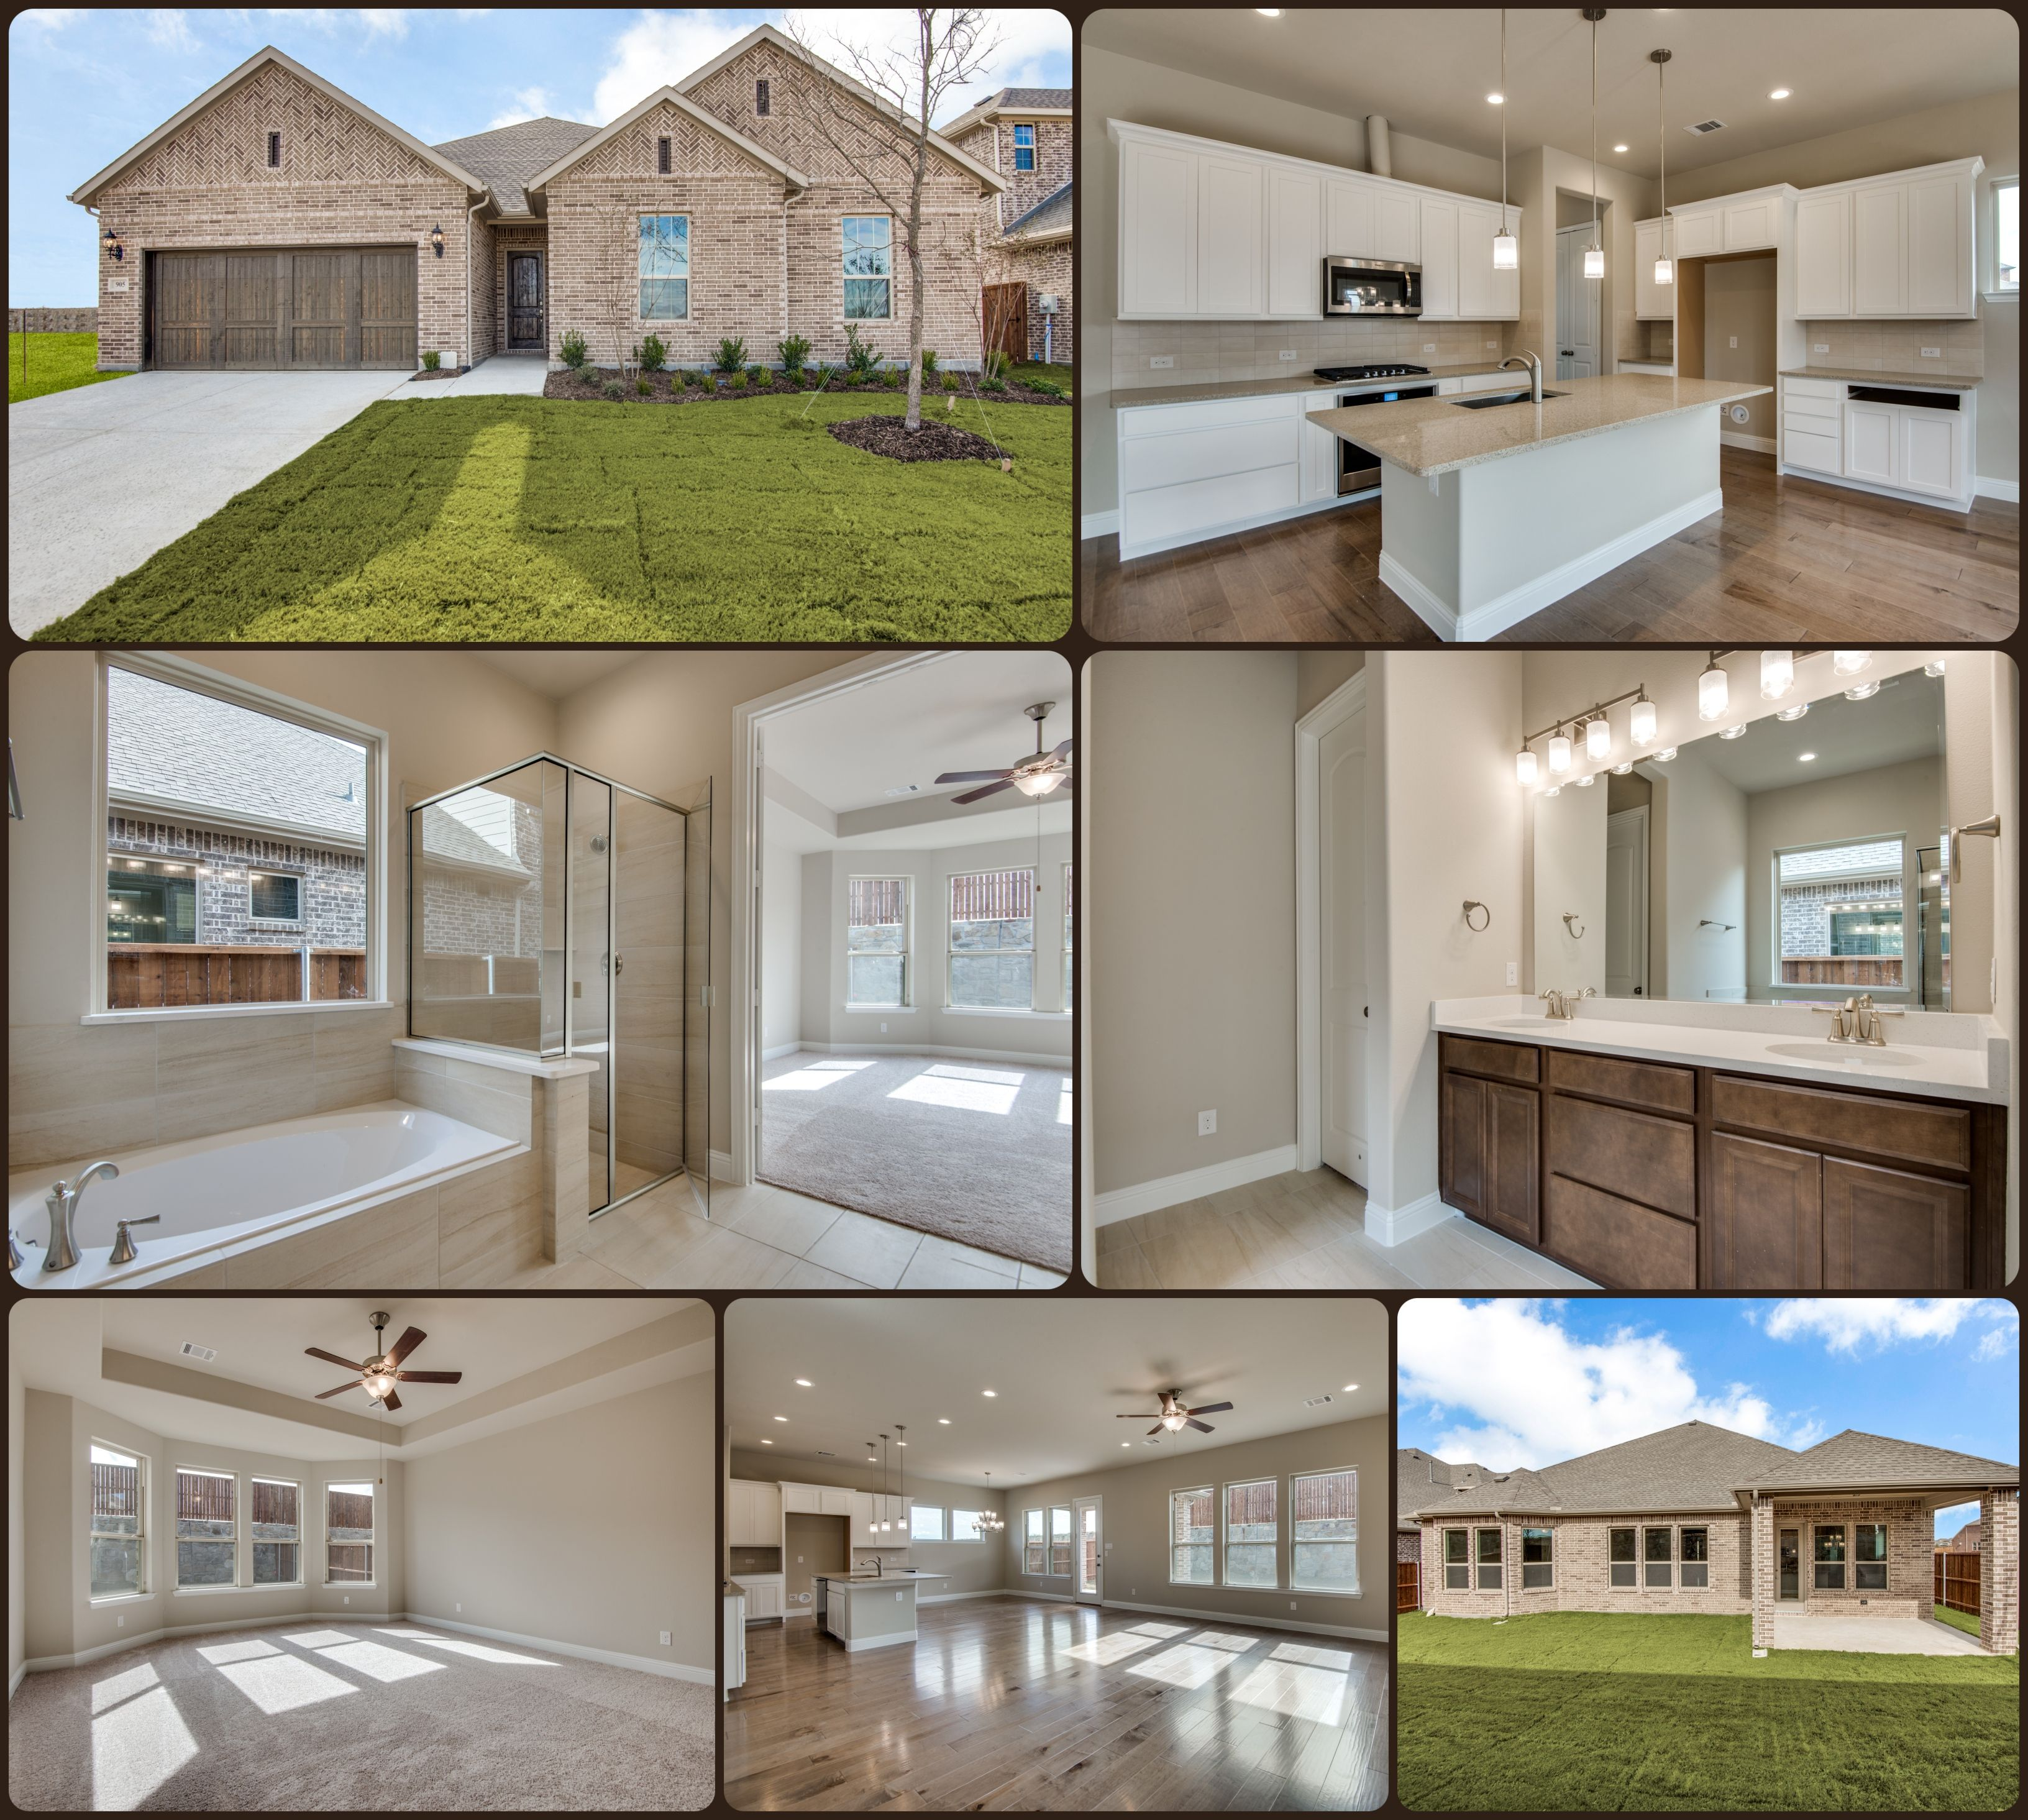 Seville plan in celina tx at our bluewood community